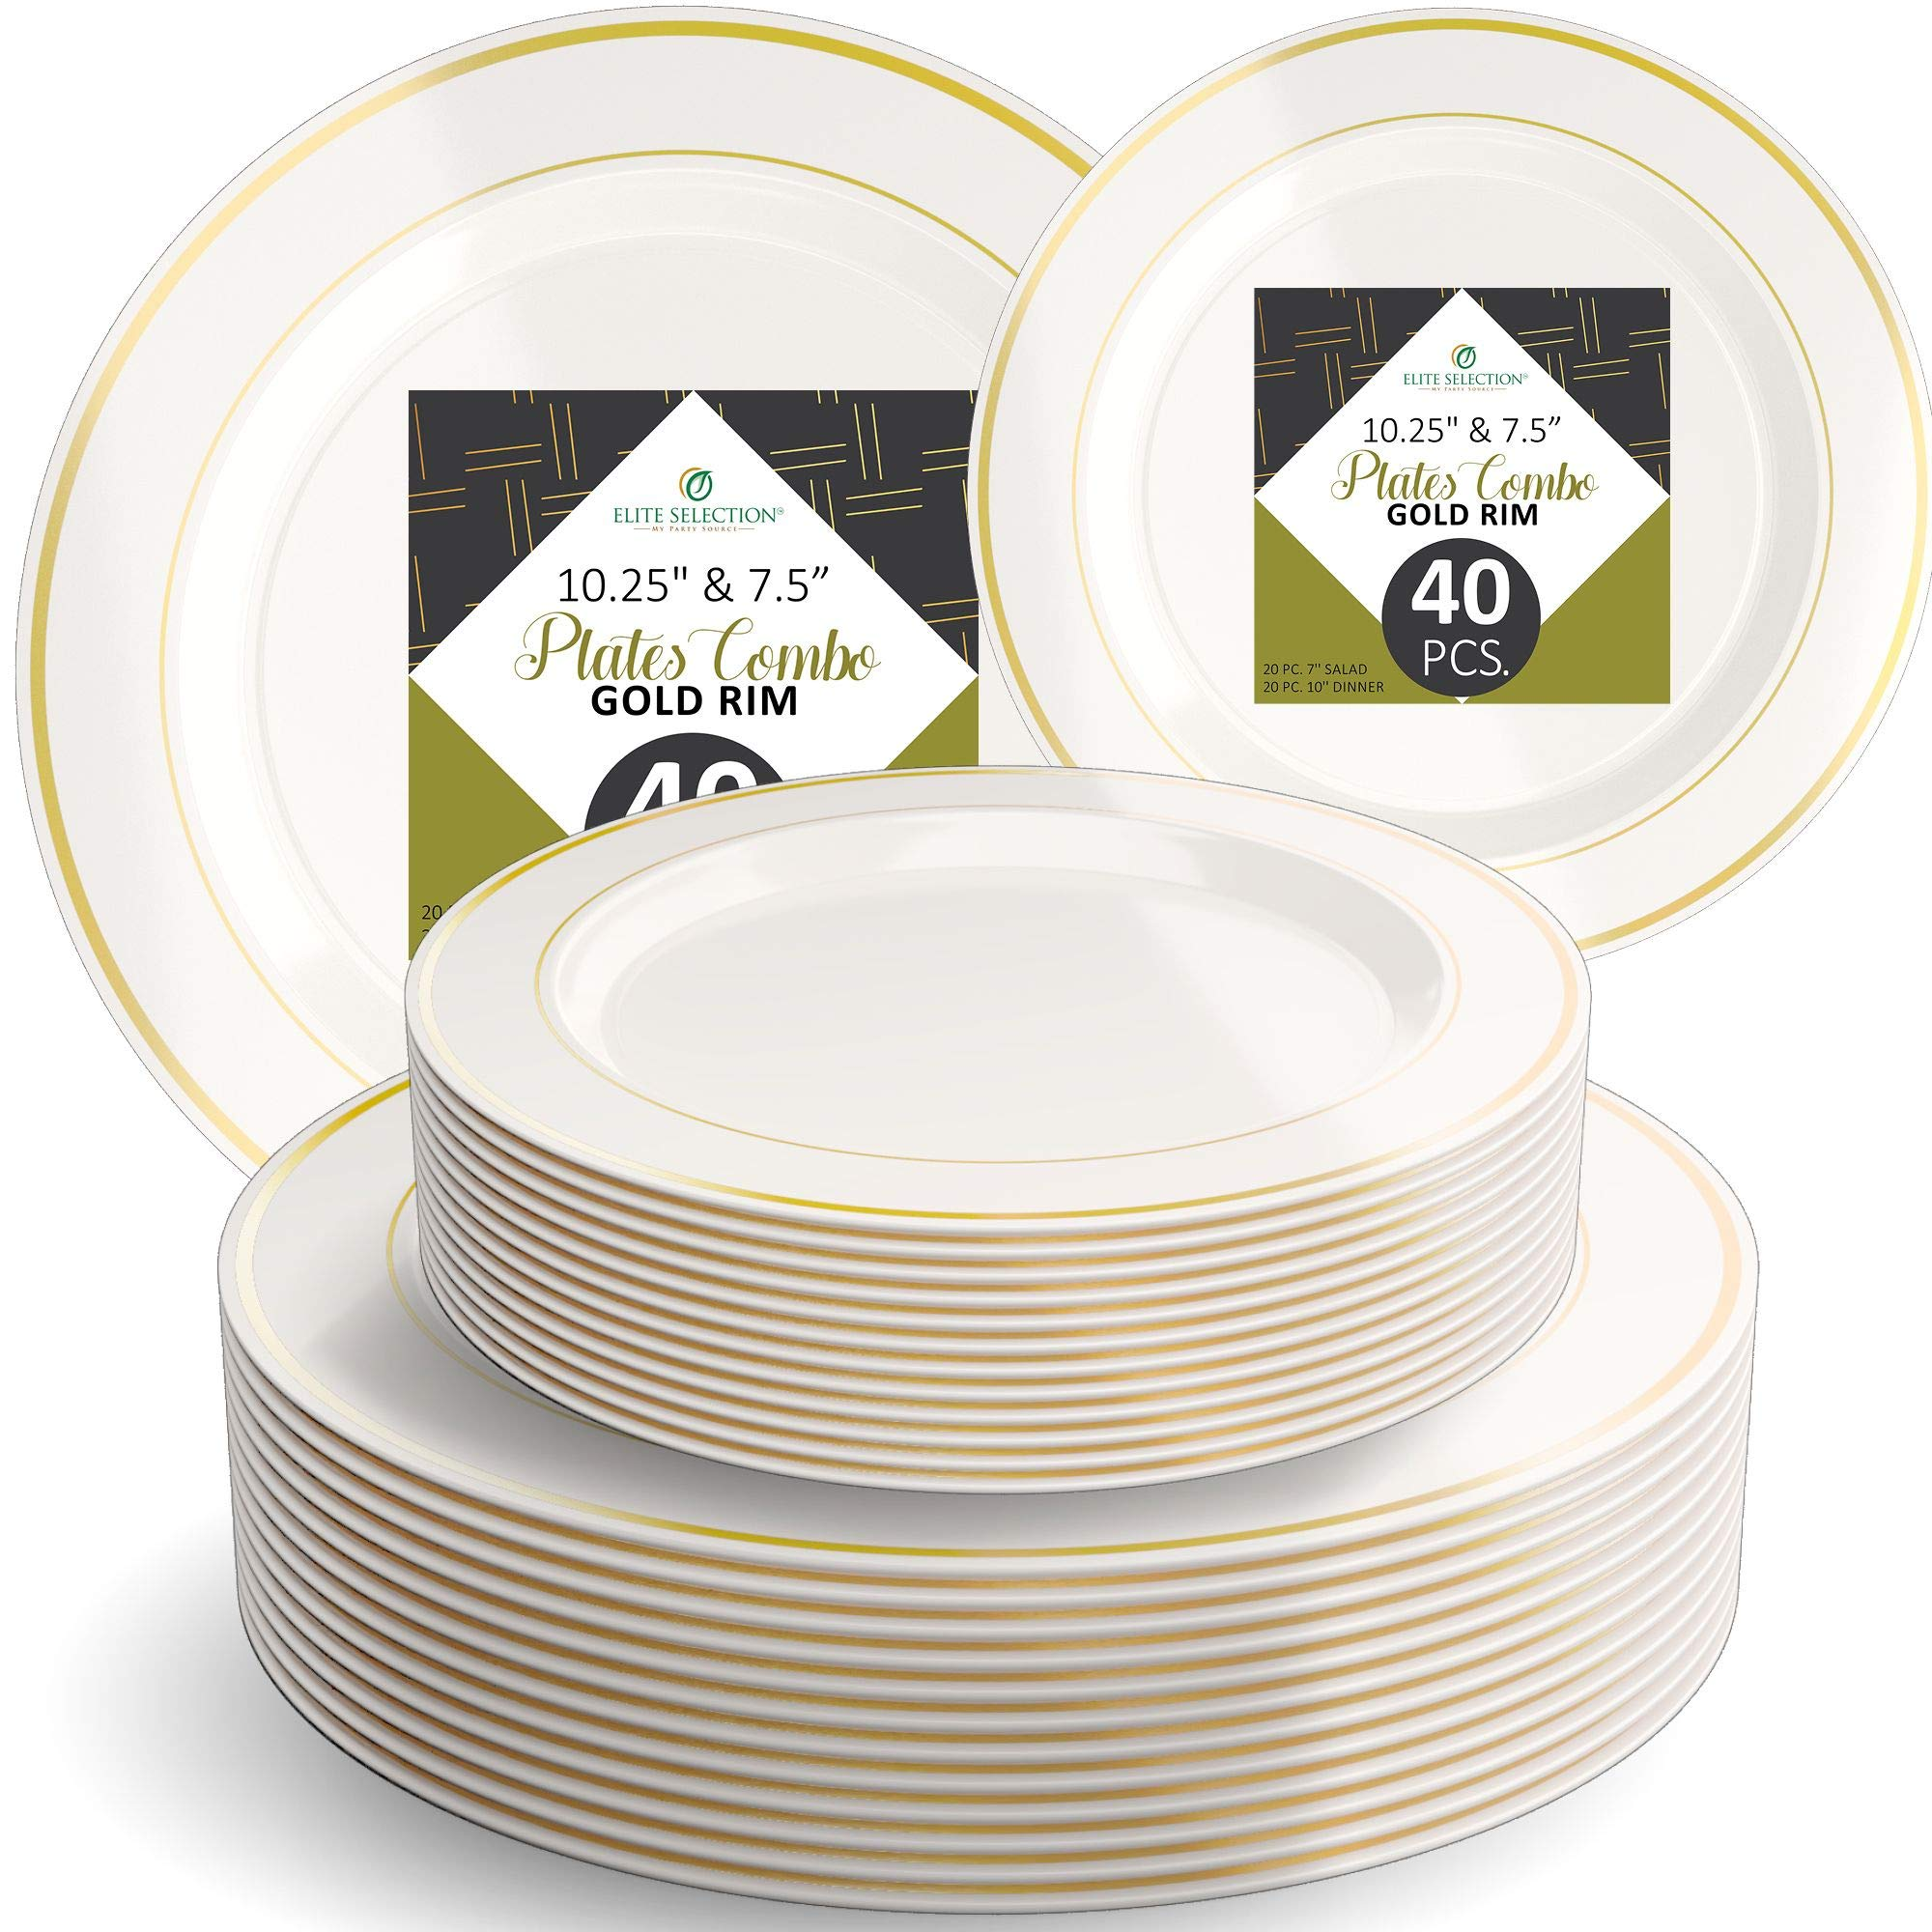 Disposable Plastic Plate Set - 40 Pack Cream Dinnerware with 10.25'' Dinner and 7.5'' Salad Plate with Elegant Gold Double Trim for Wedding, Birthday, Party - by Elite Selection